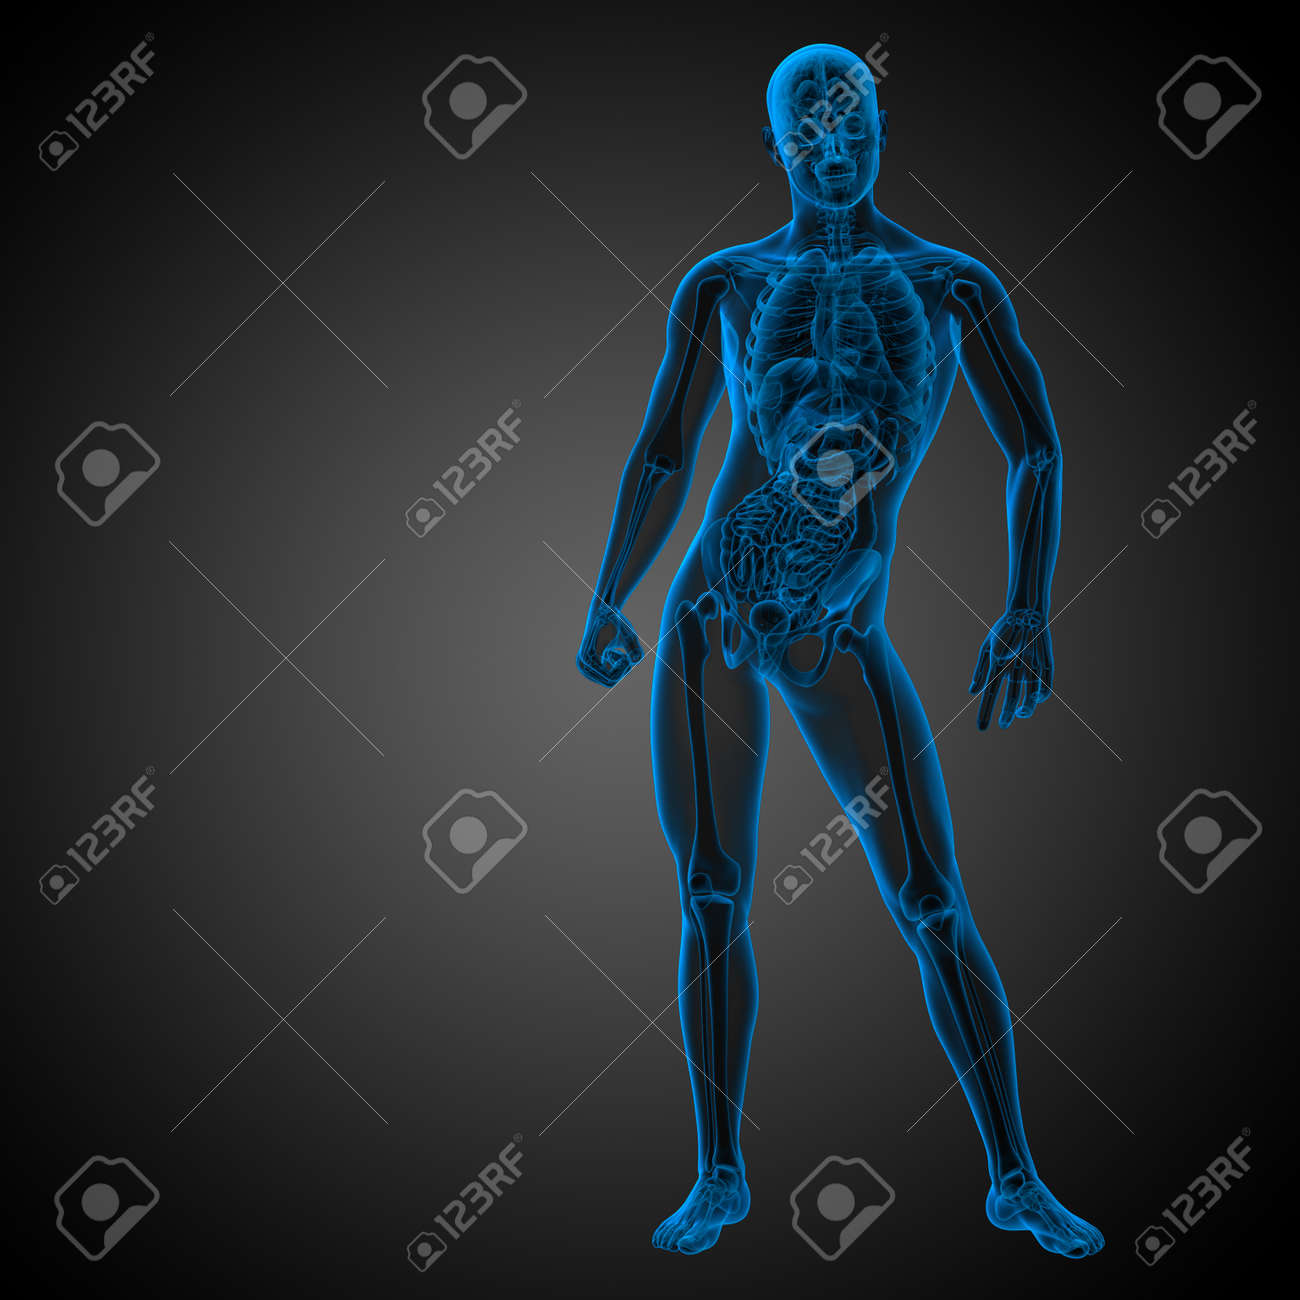 3d render medical illustration of the human anatomy - front view - 169098447